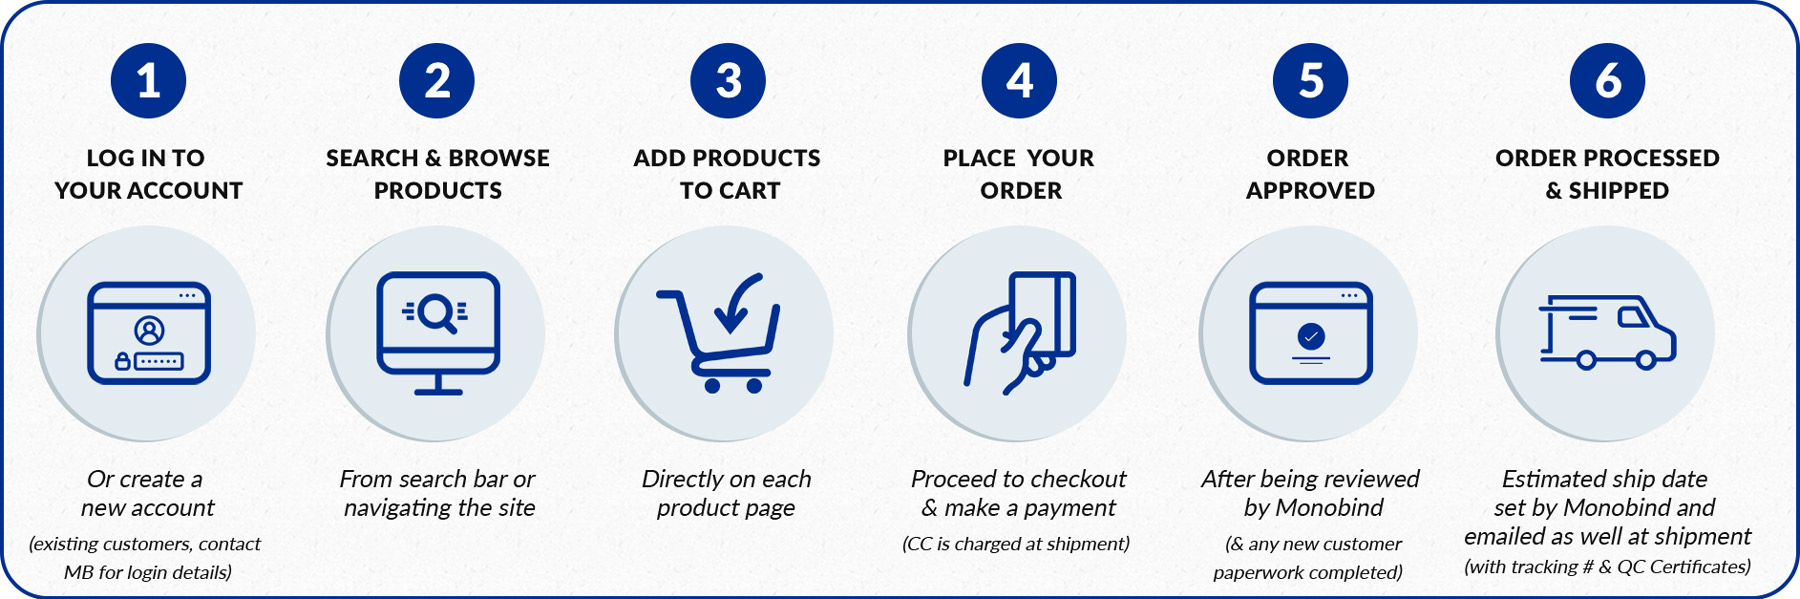 Shop by product browsing steps